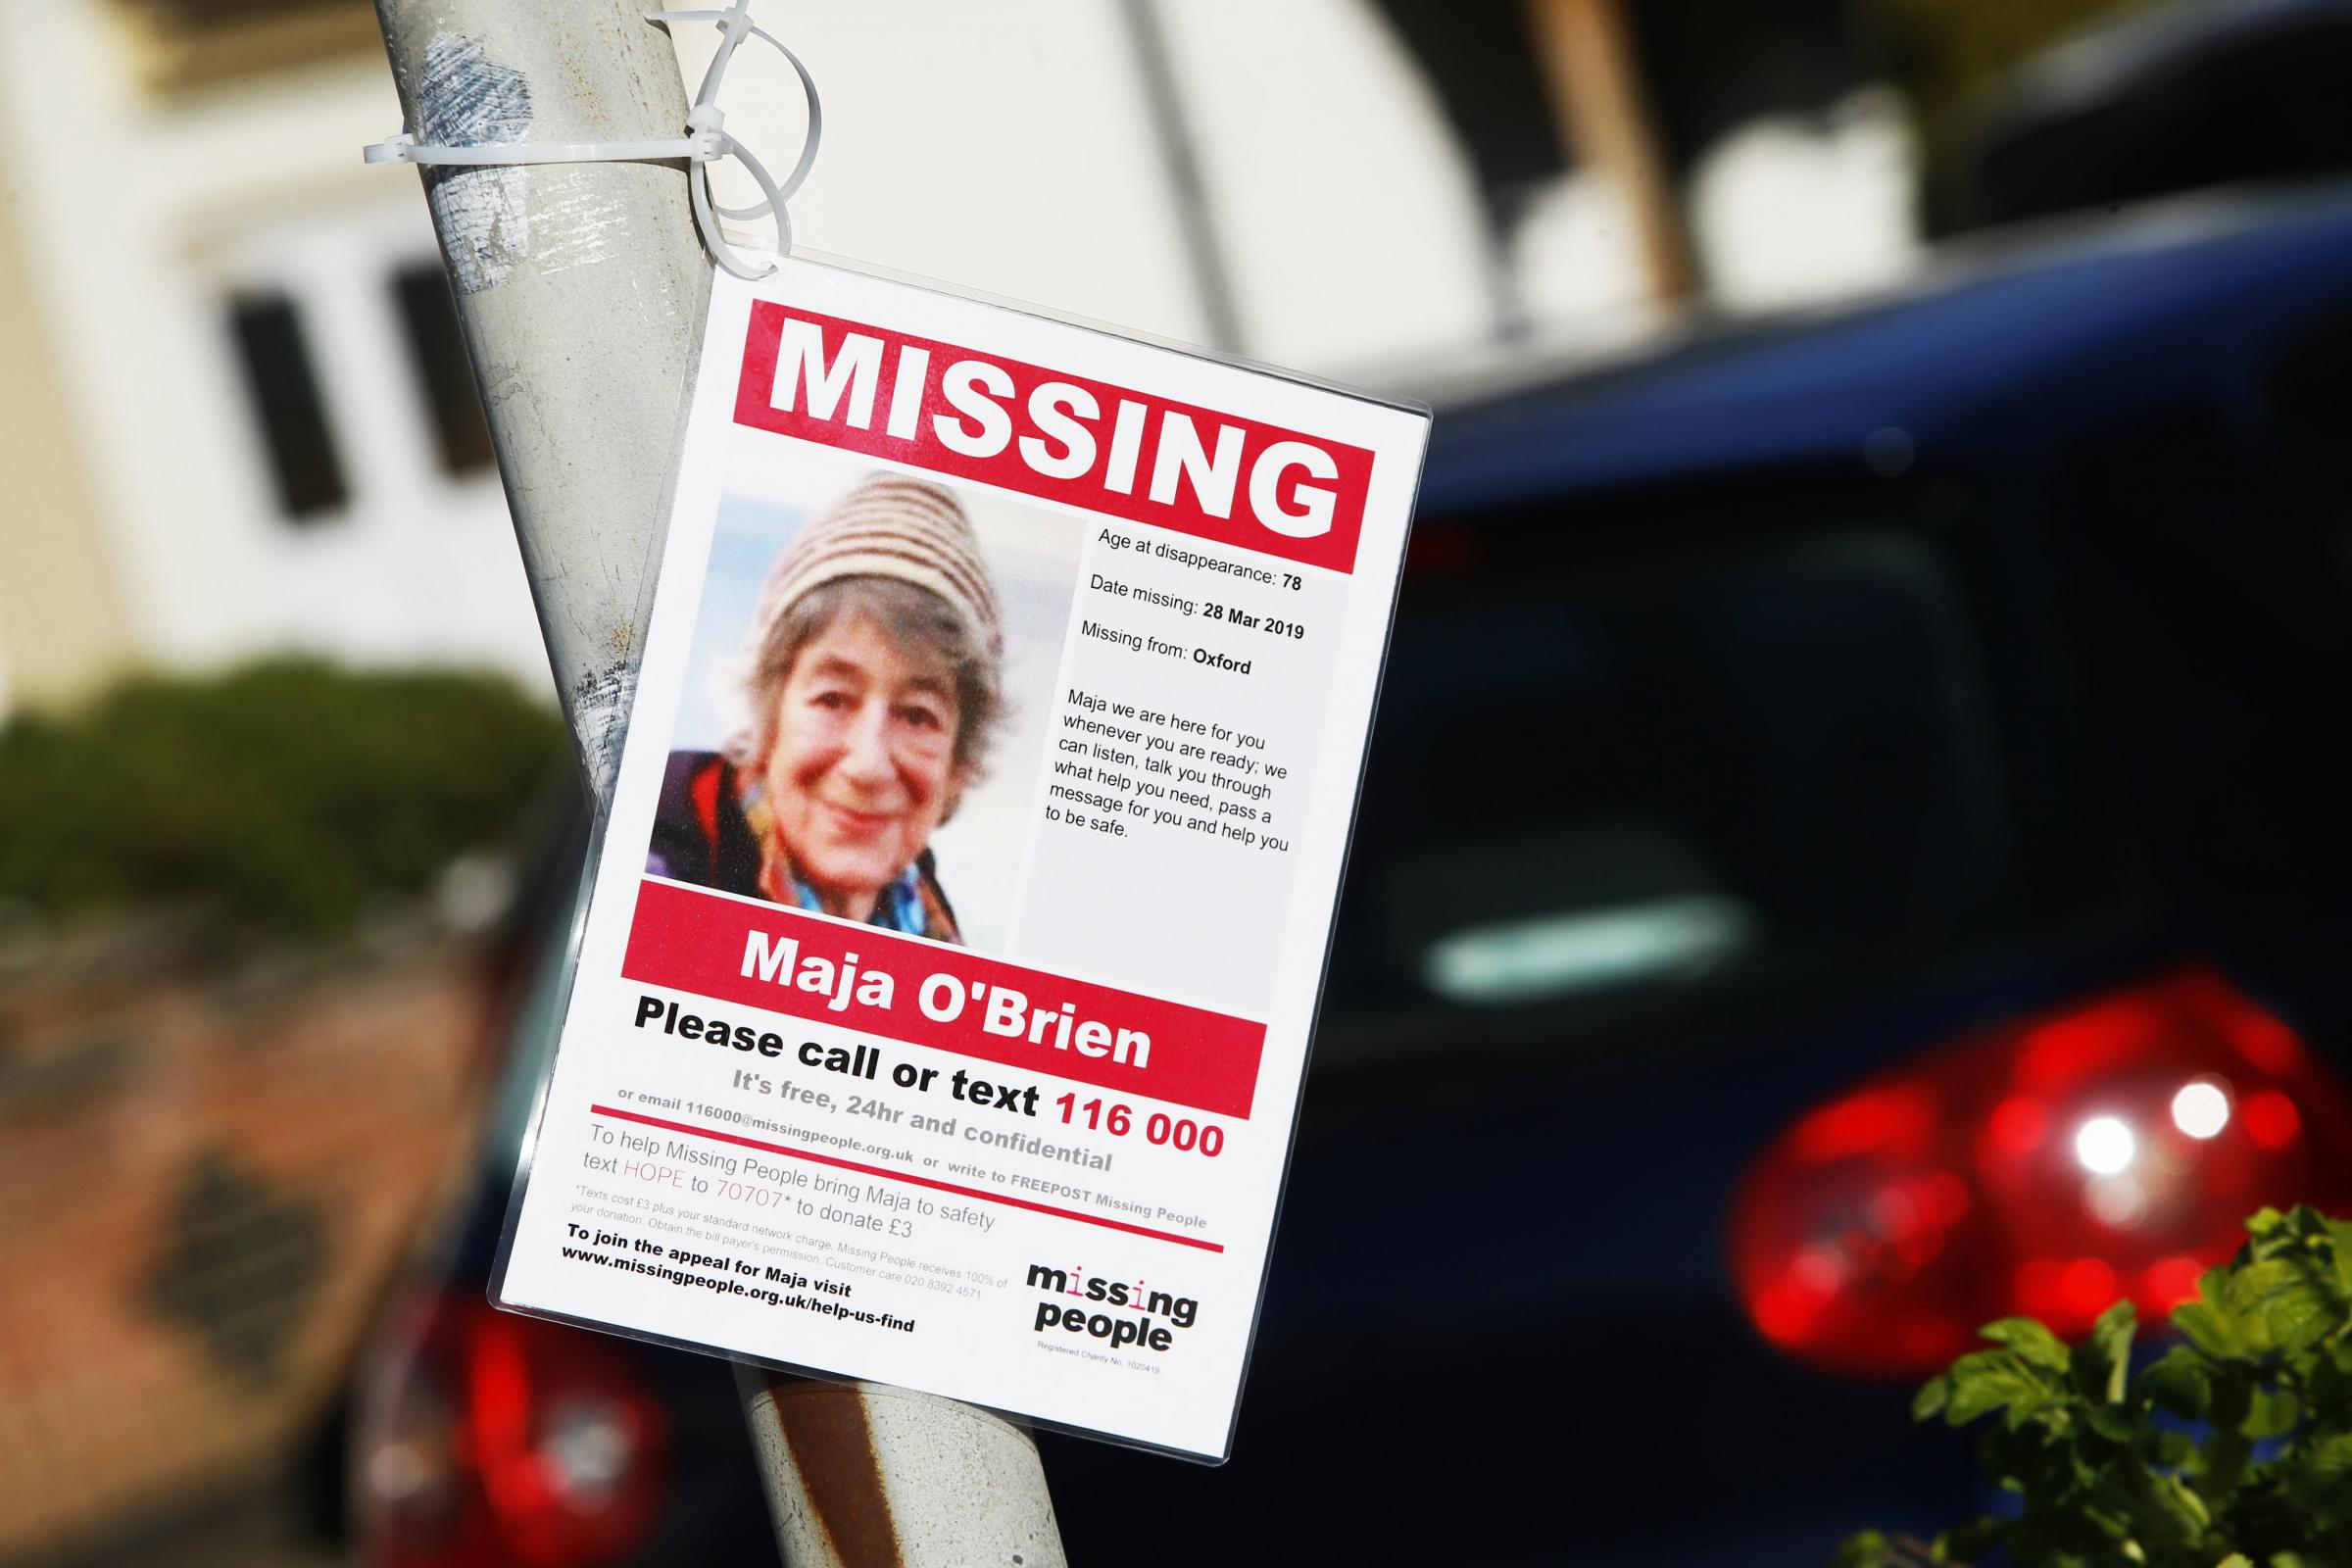 Maja O'Brien still missing from Oxford almost a month on